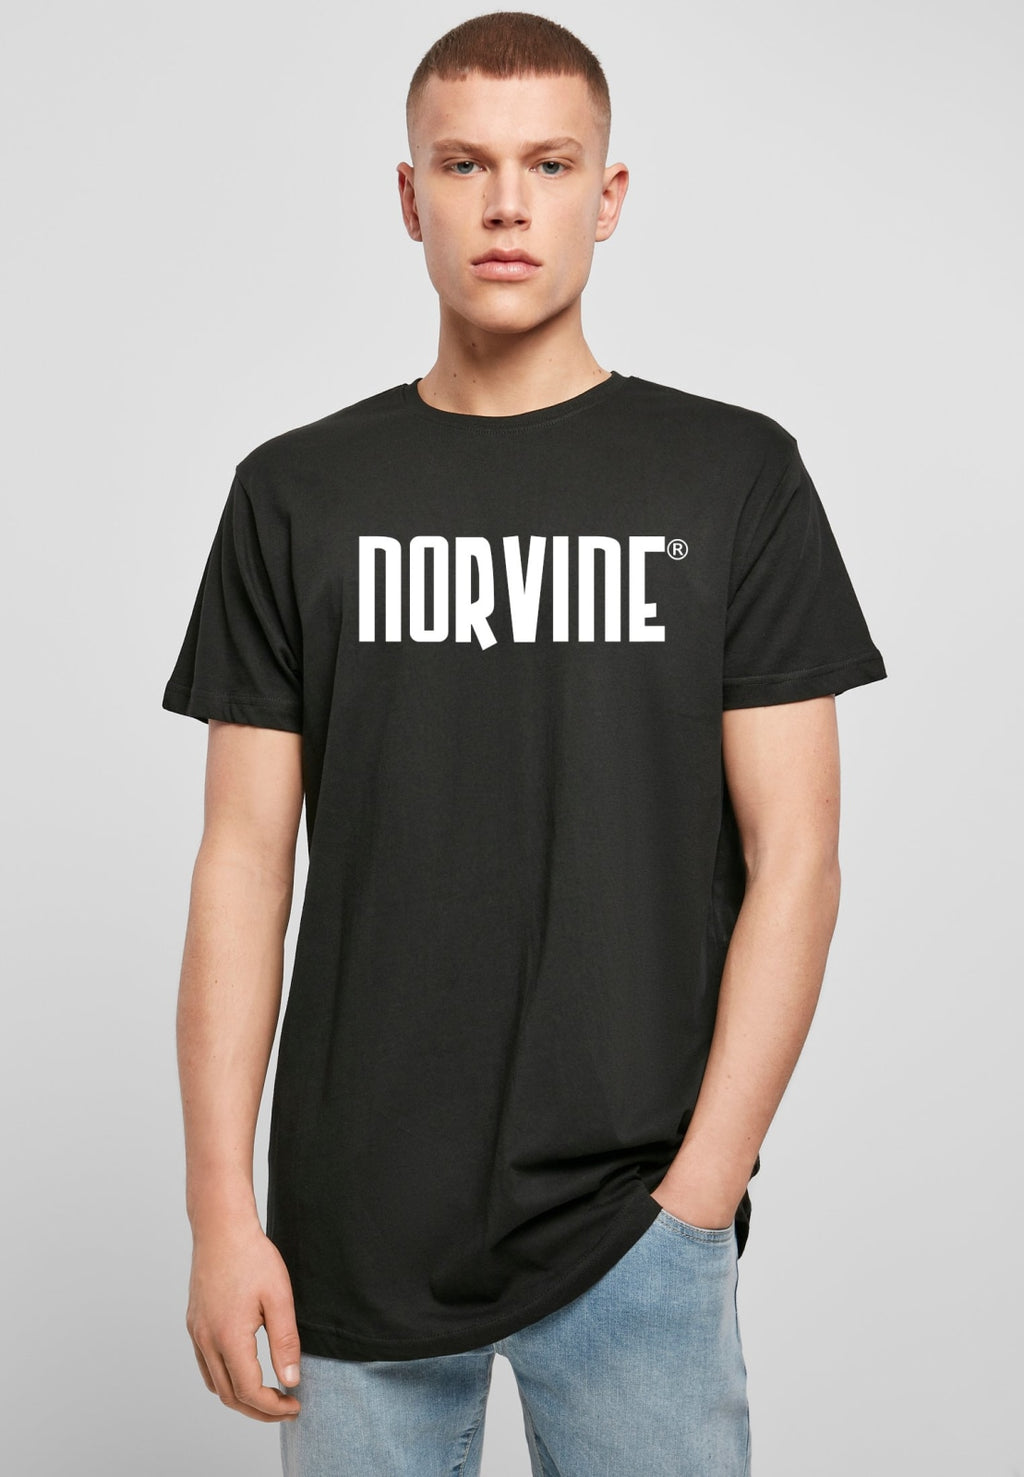 Norvine Logo Shaped Long Tee T-shirt Norvine